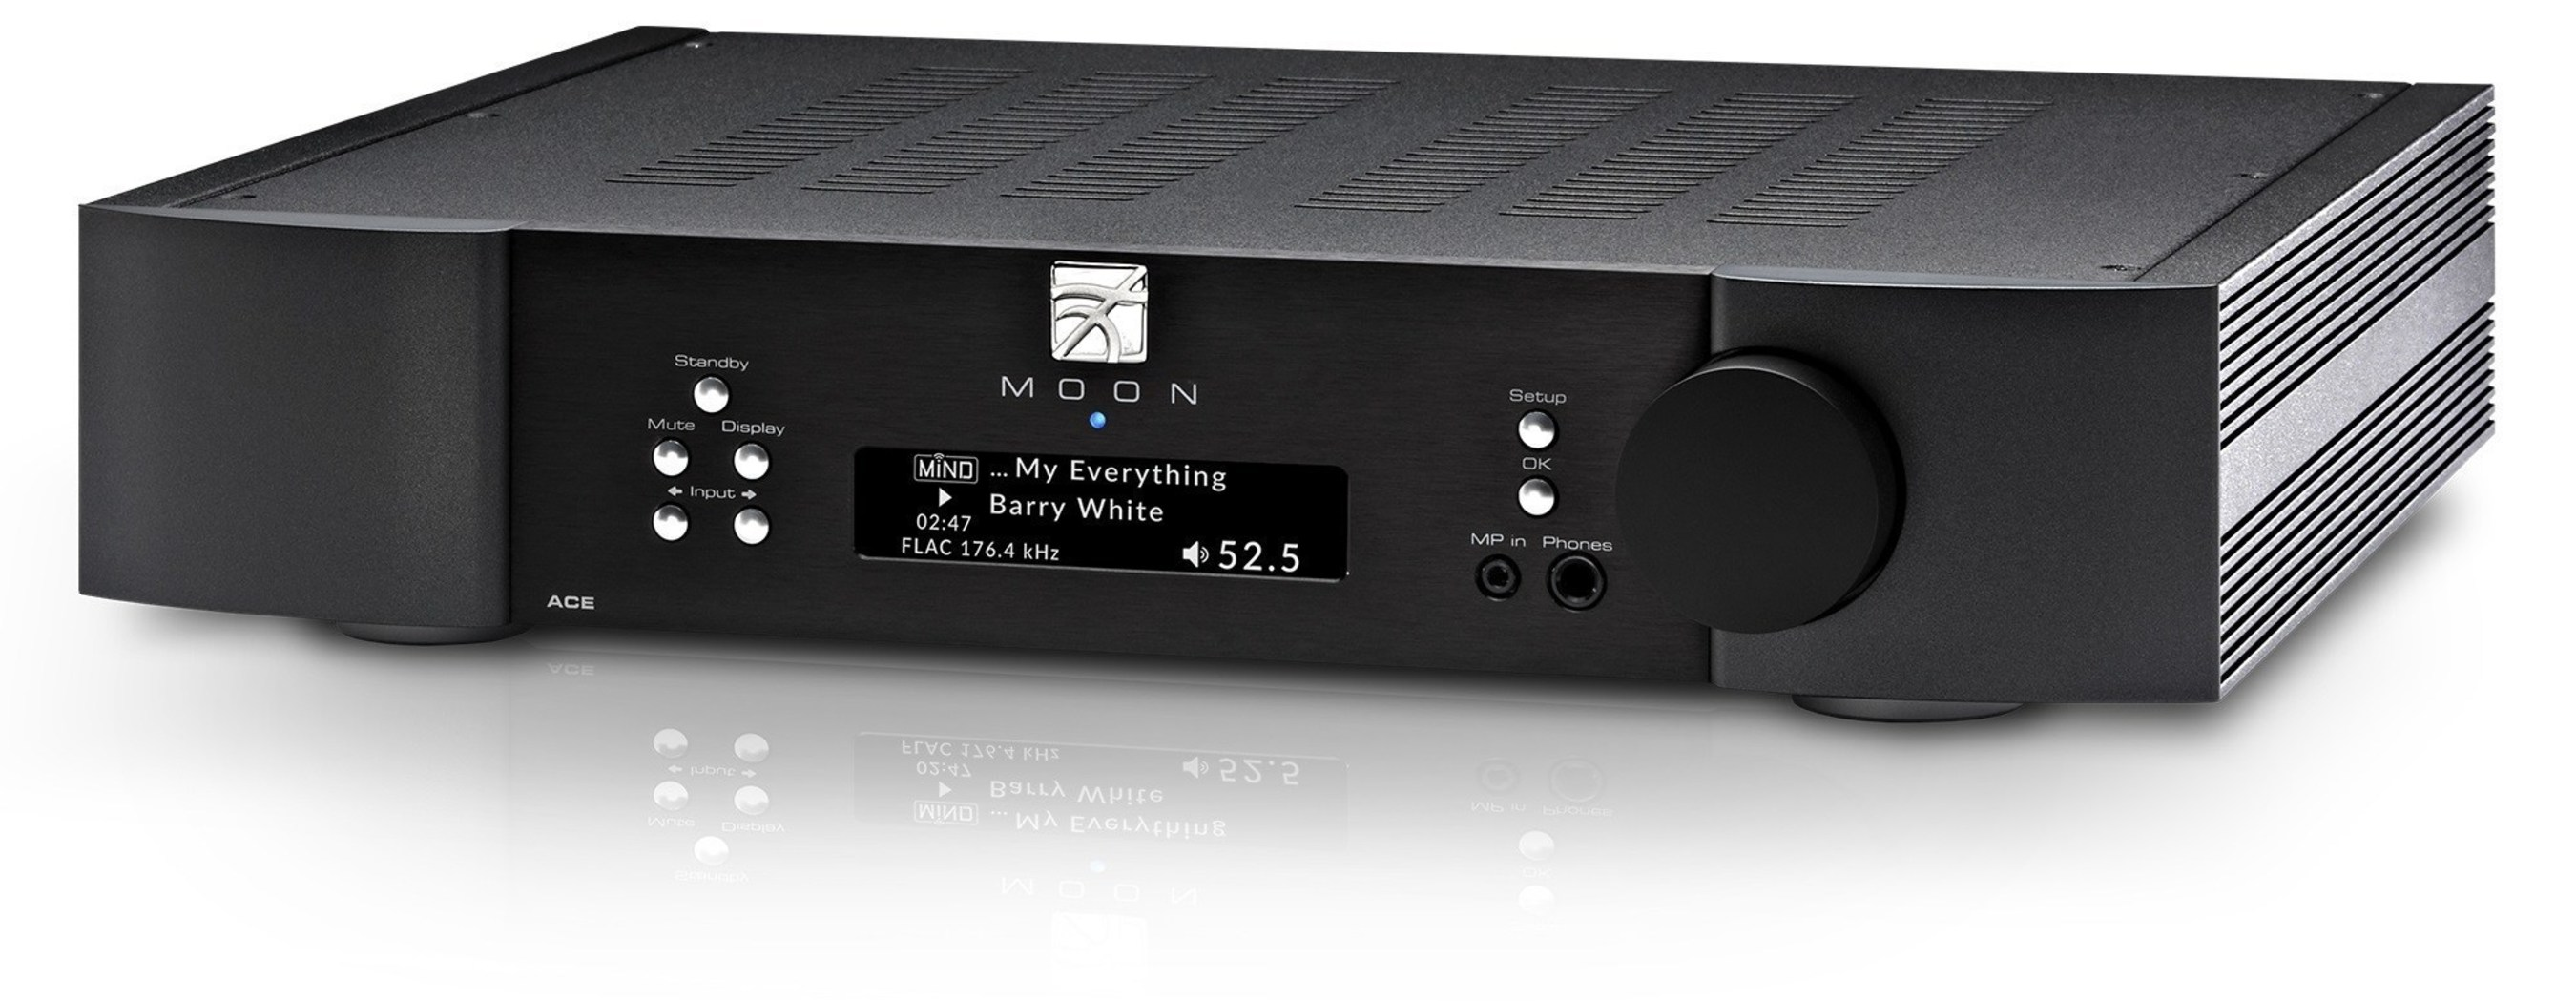 MOON by Simaudio proudly introduces the MOON Neo ACE 'All in One' Integrated Amplifier + Streaming